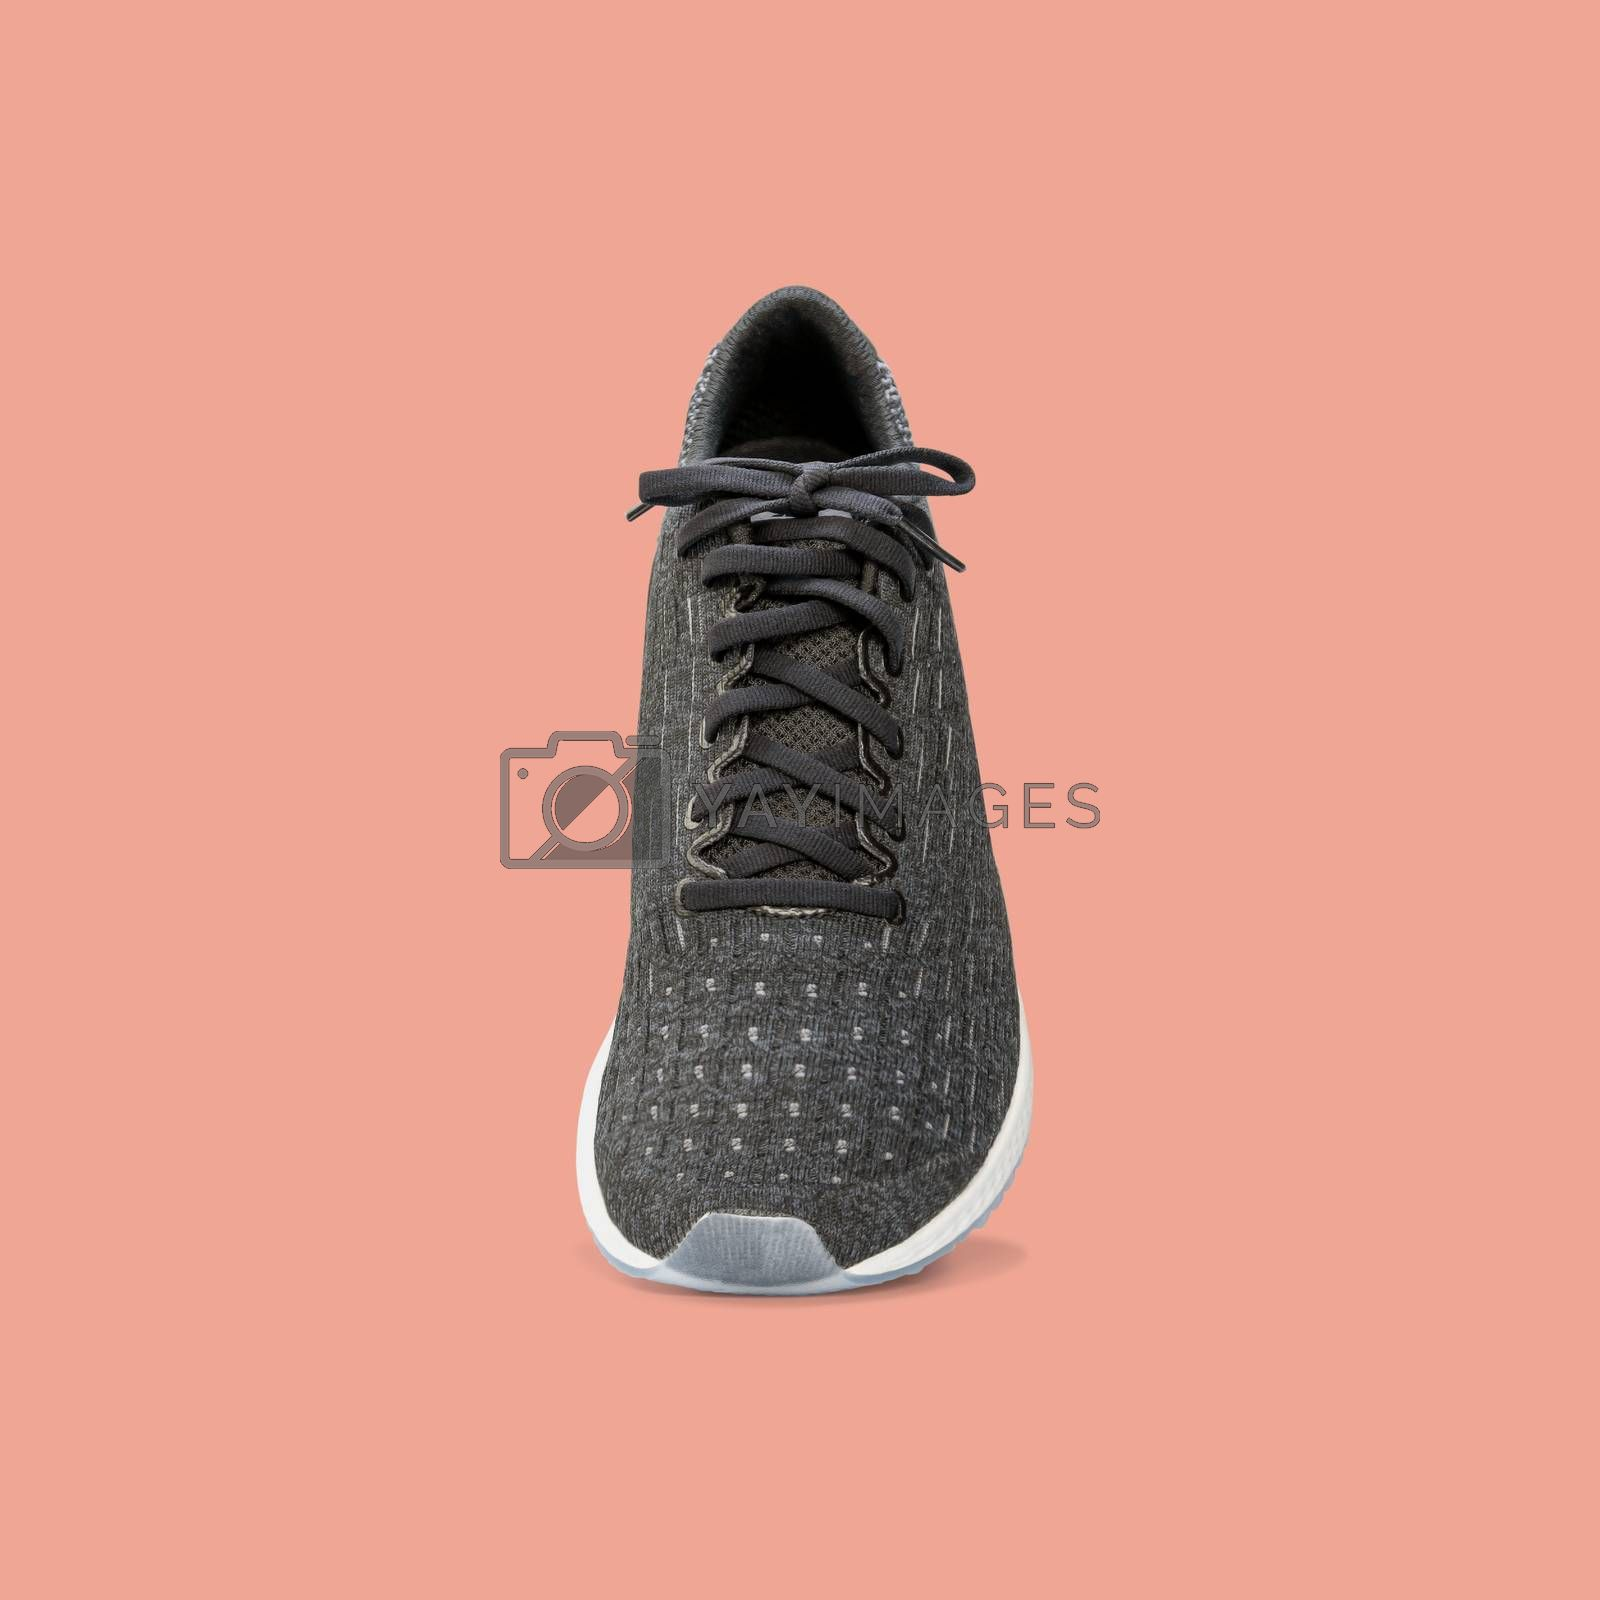 Fashion running sneaker shoes isolated on beautiful pastel color background, with clipping path.